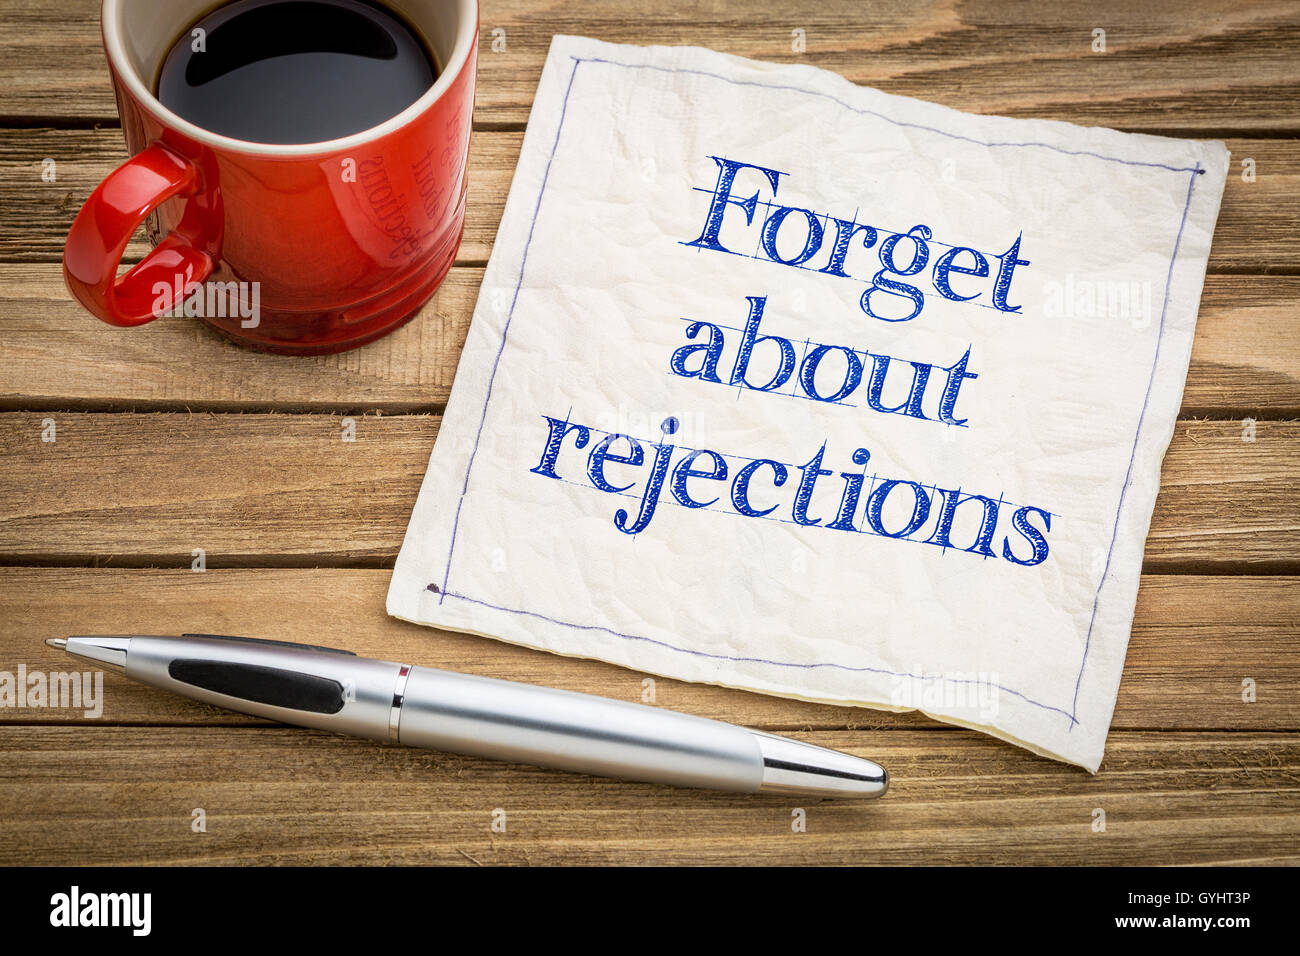 Forget about rejections - handwriting on a napkin with a cup of espresso coffee - Stock Image